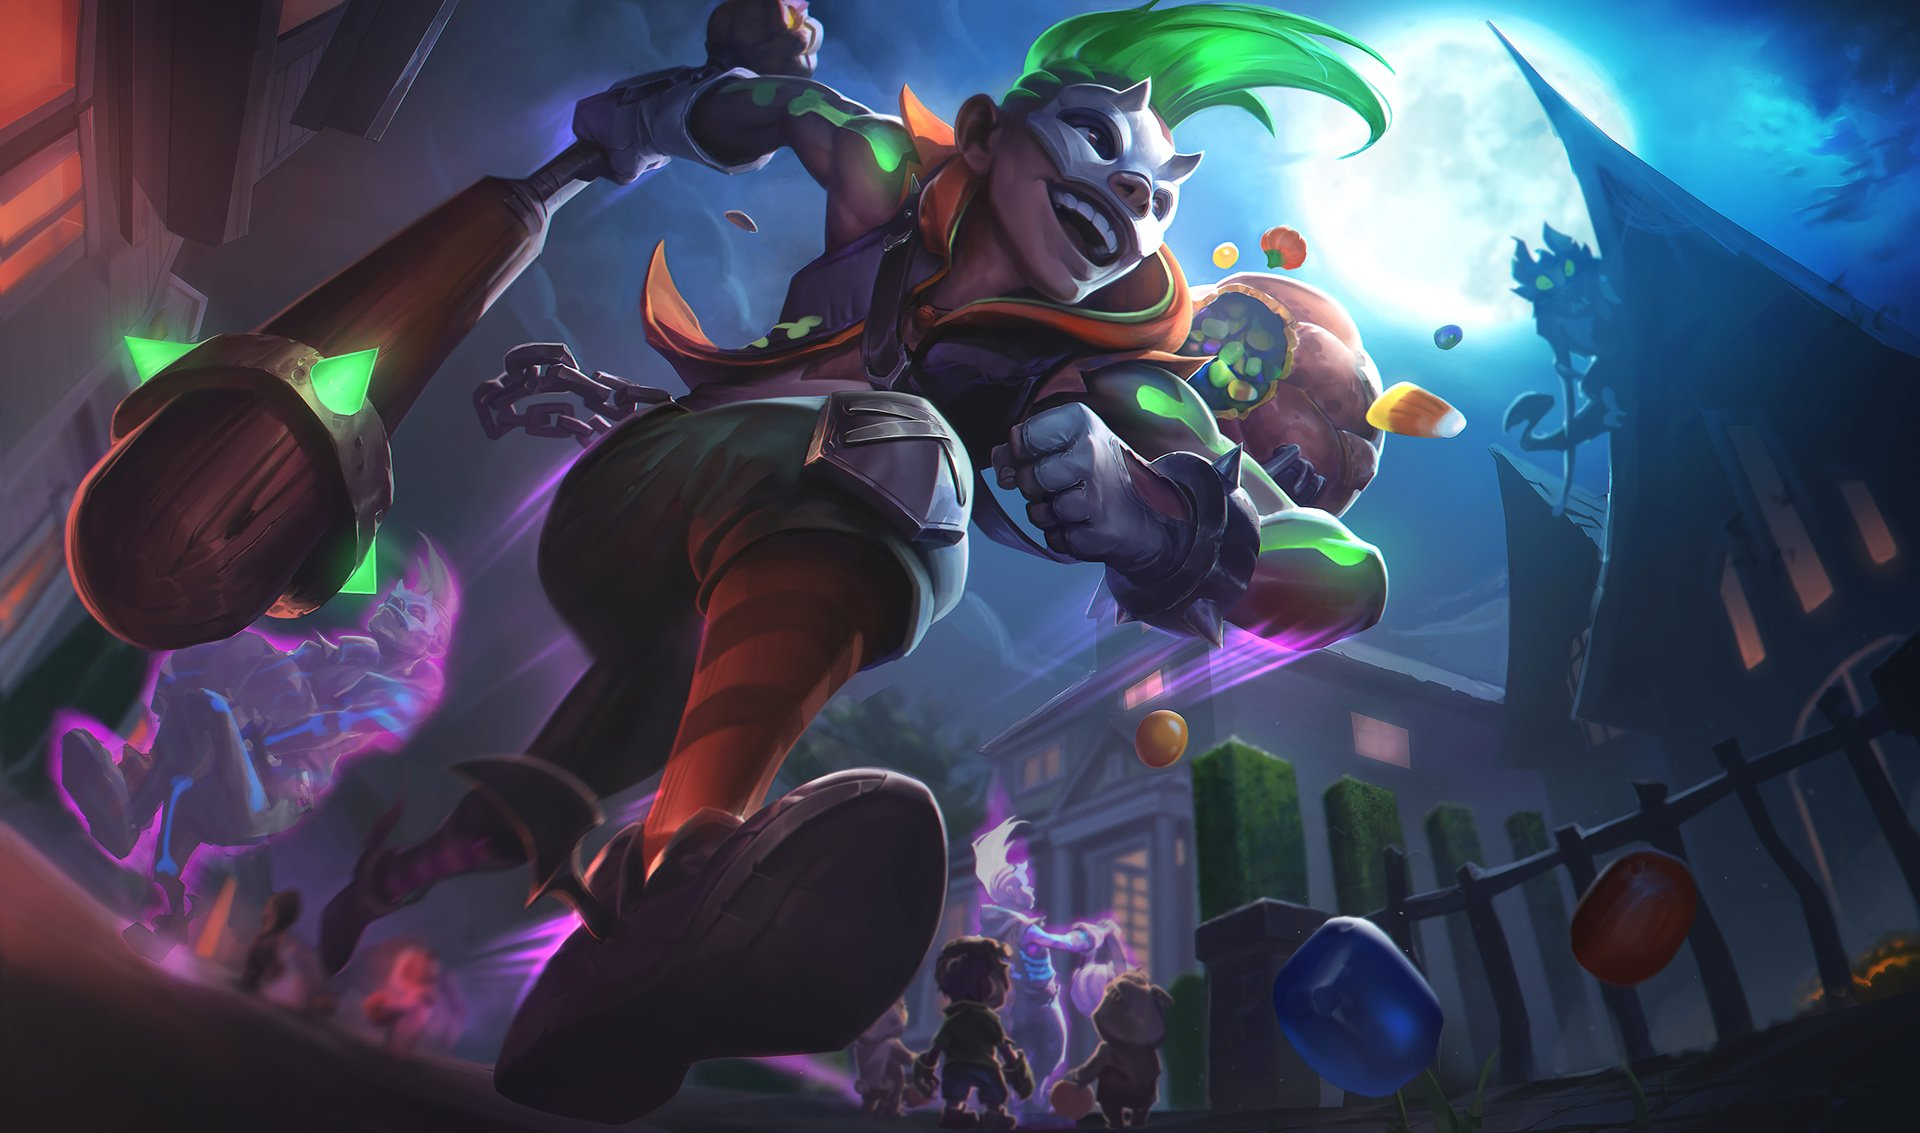 Trick Or Treat Ekko Fondo De Pantalla Hd Fondo De